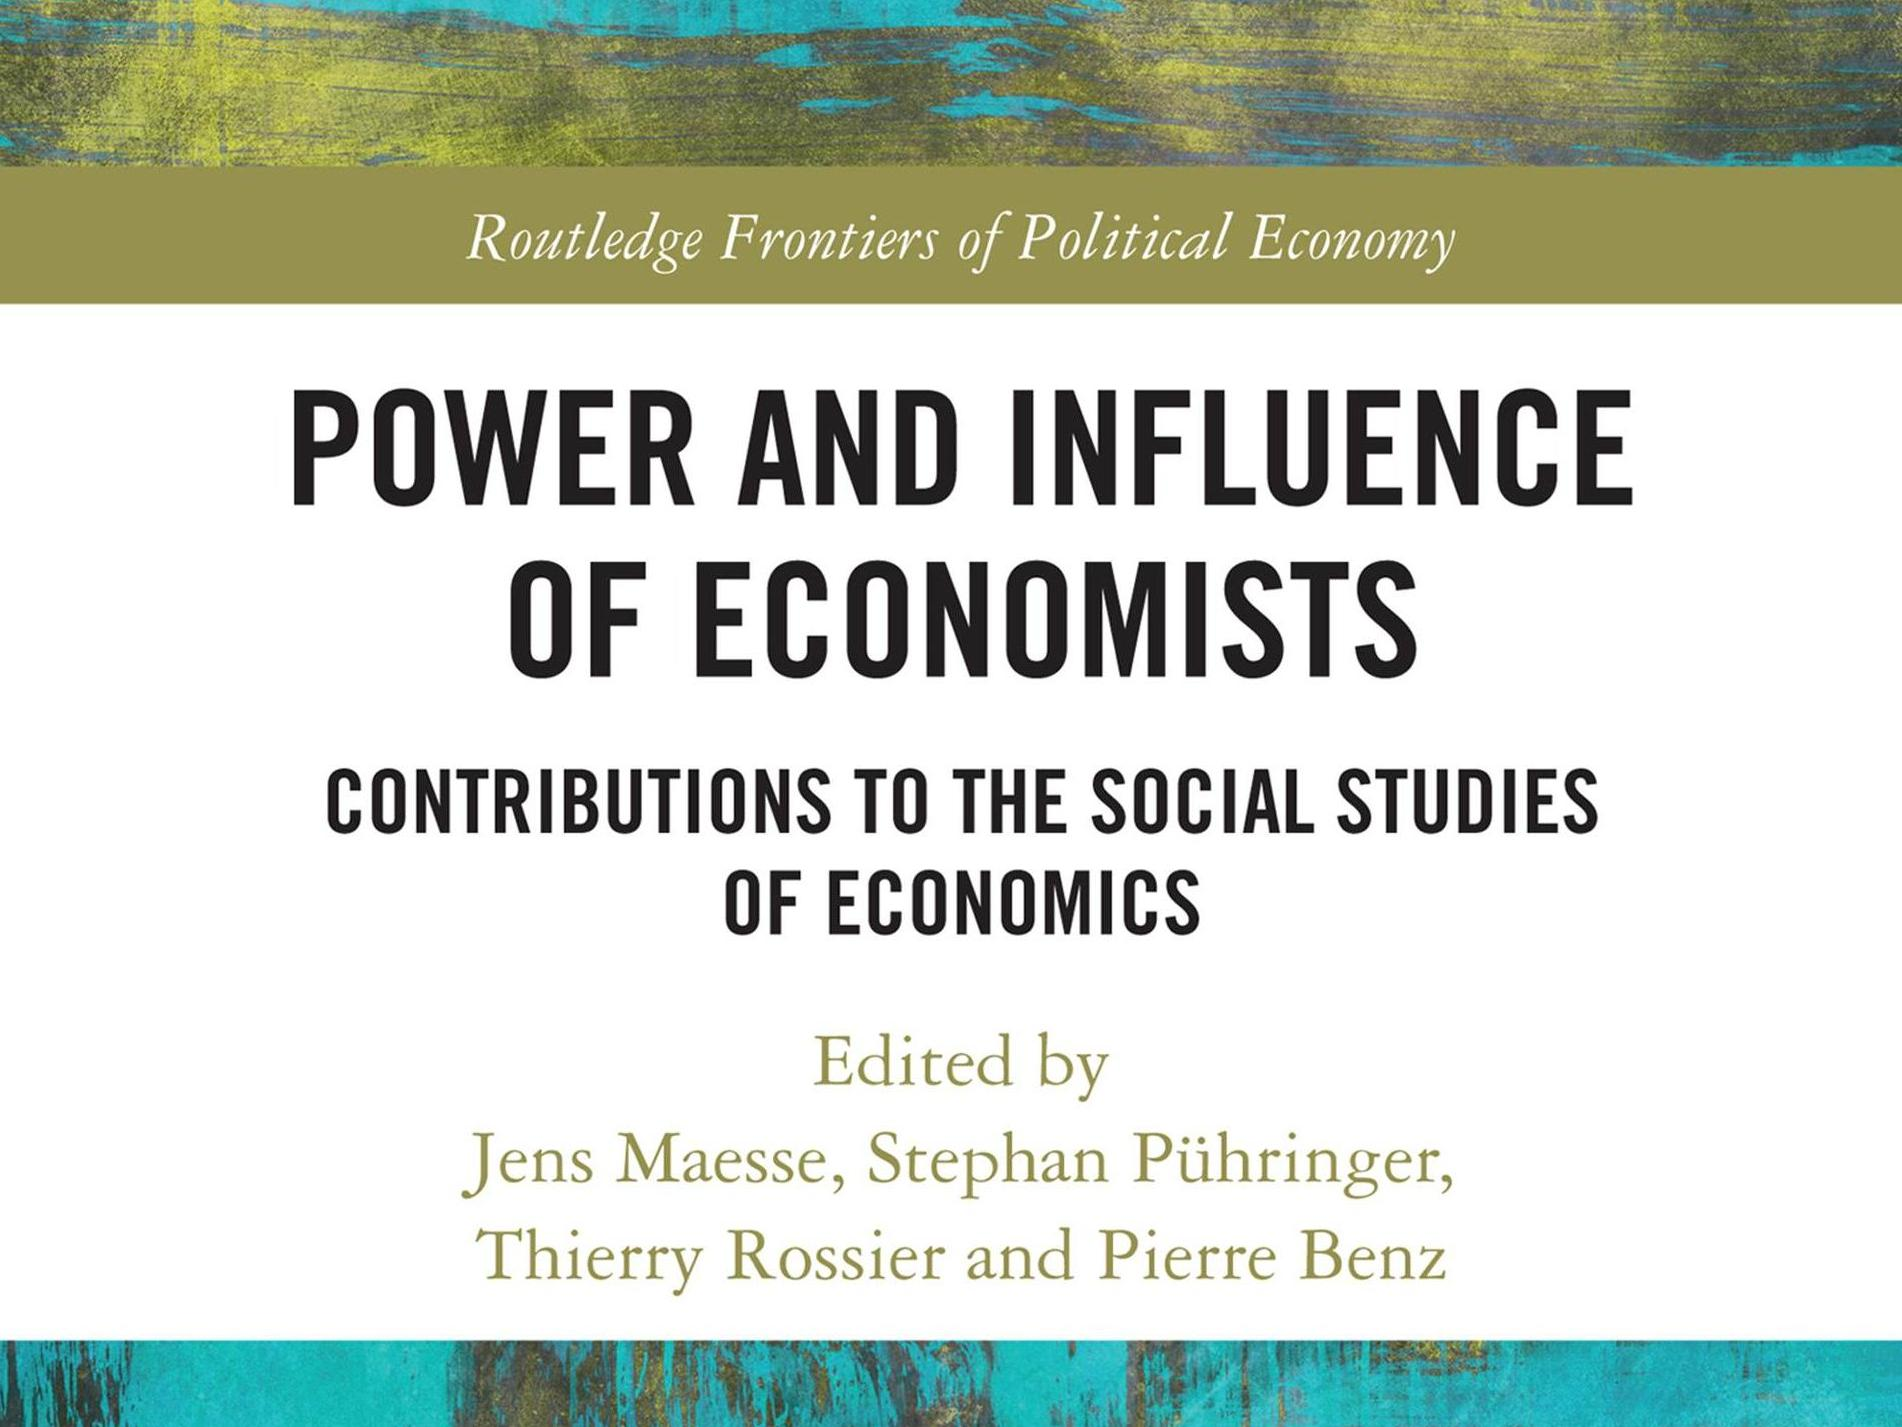 Power and Influence of Economists. Contributions to the Social Studies of Economics